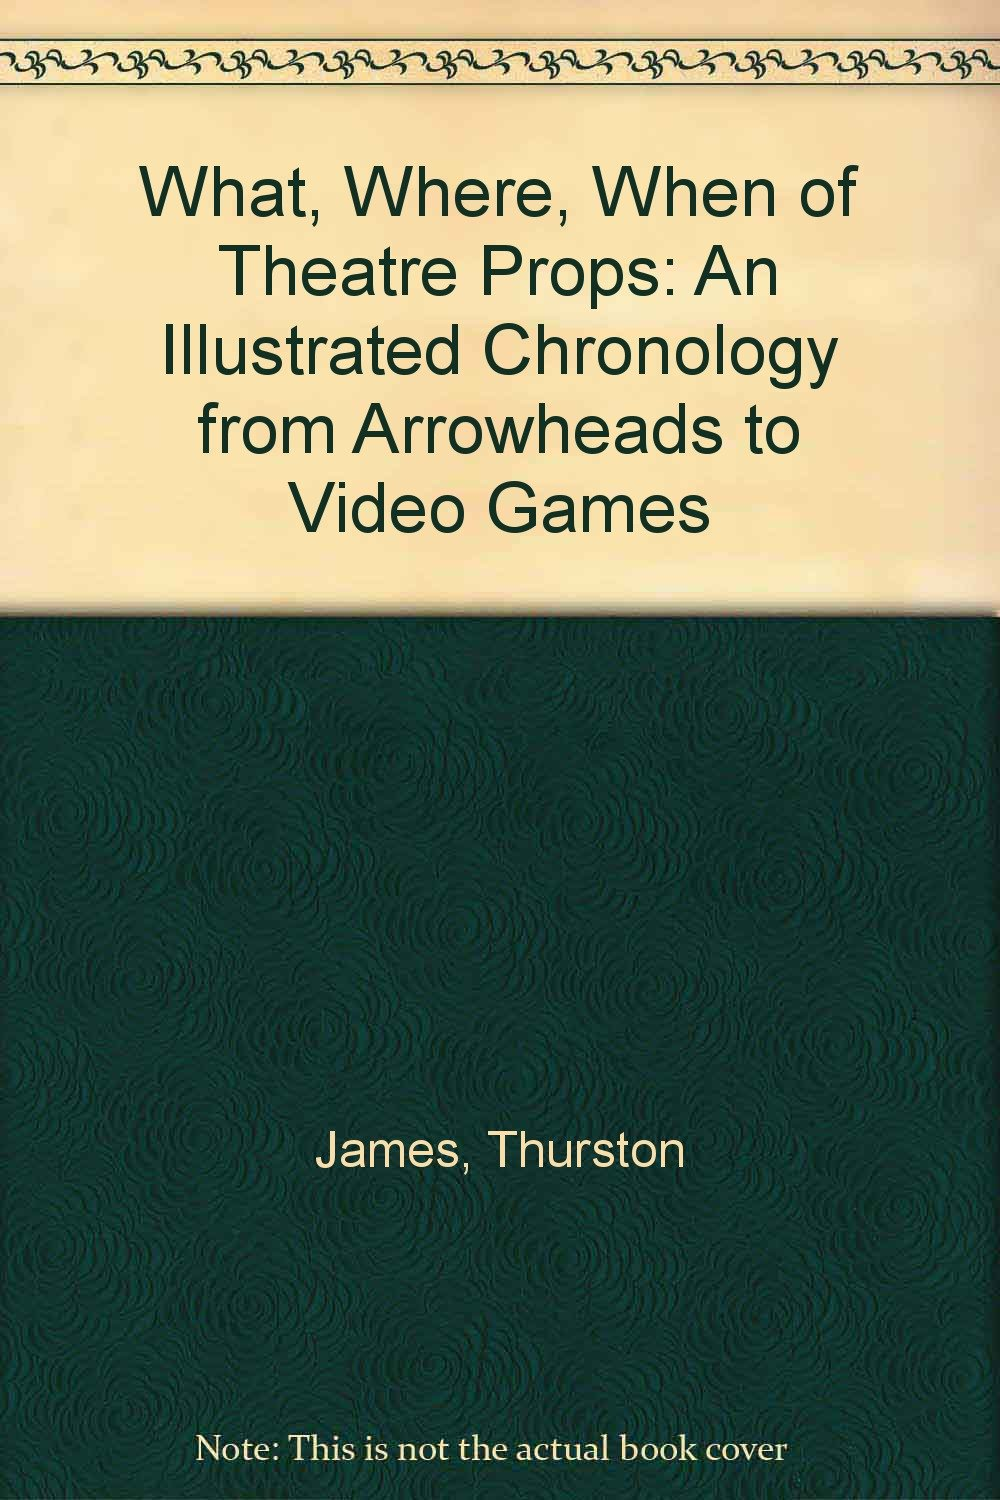 the-what-where-when-of-theater-props-an-illustrated-chronology-from-arrowheads-to-video-games